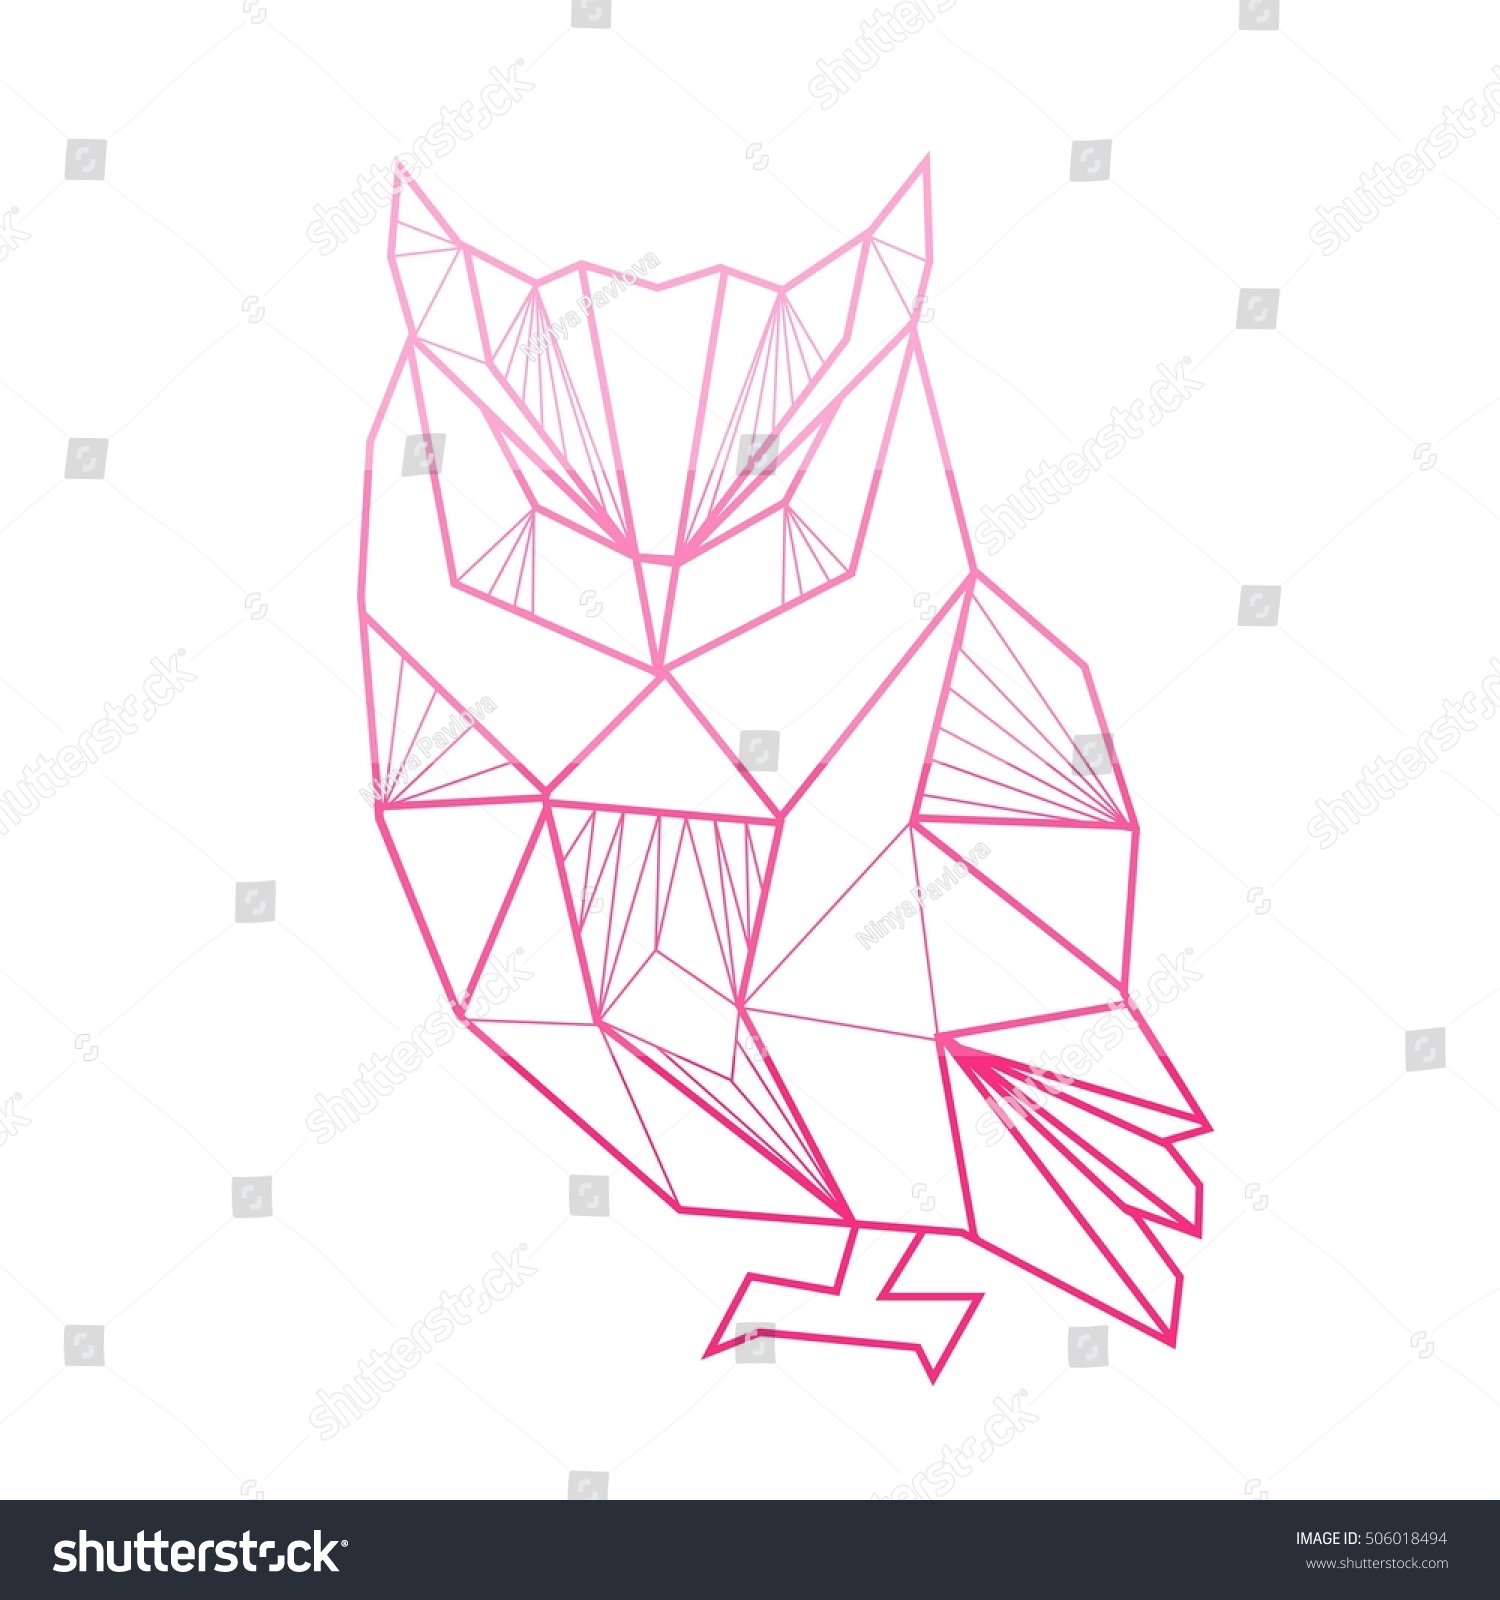 Vector Polygonal Illustration Geometric Owl Gradient Stock ... - photo#14